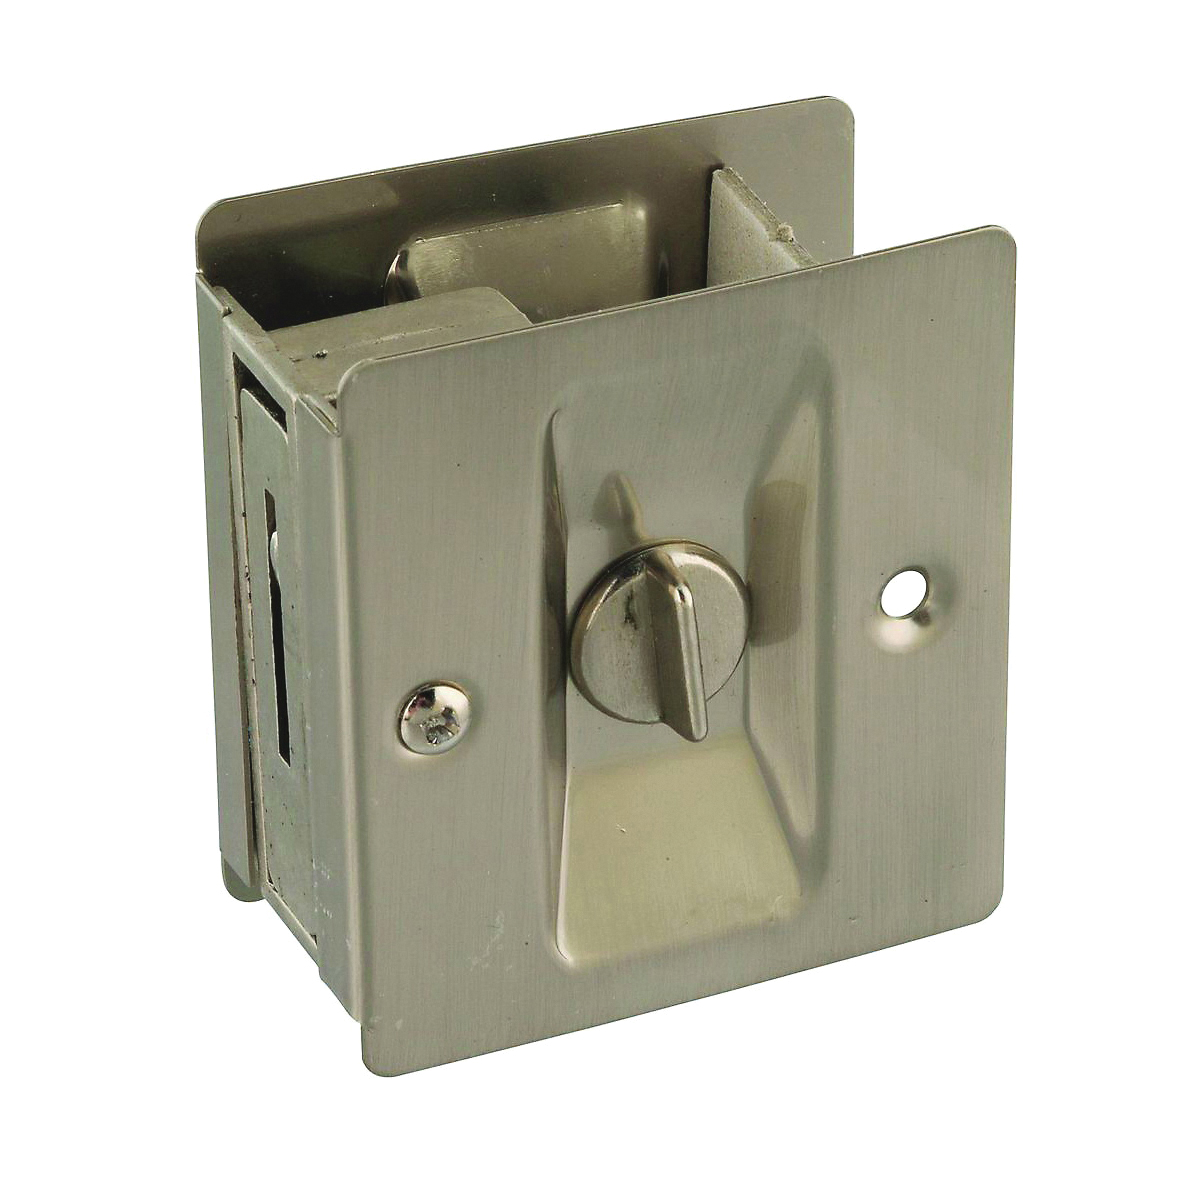 Picture of National Hardware V1951 Series N326-272 Pocket Door Latch, Solid Brass, Satin Nickel